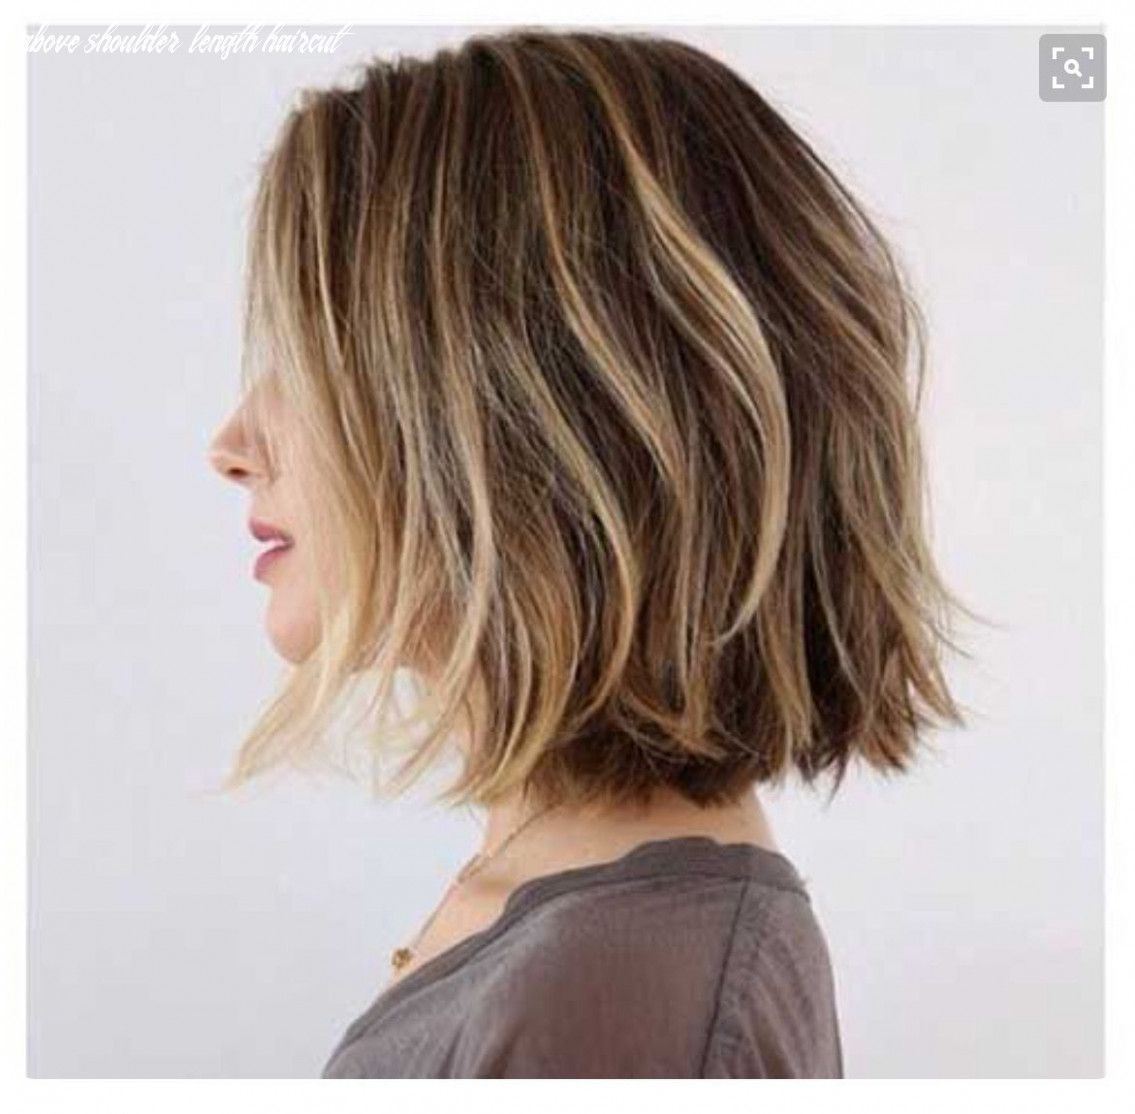 9 Above Shoulder Length Haircut Hair Styles Bob Hairstyles Choppy Bob Hairstyles